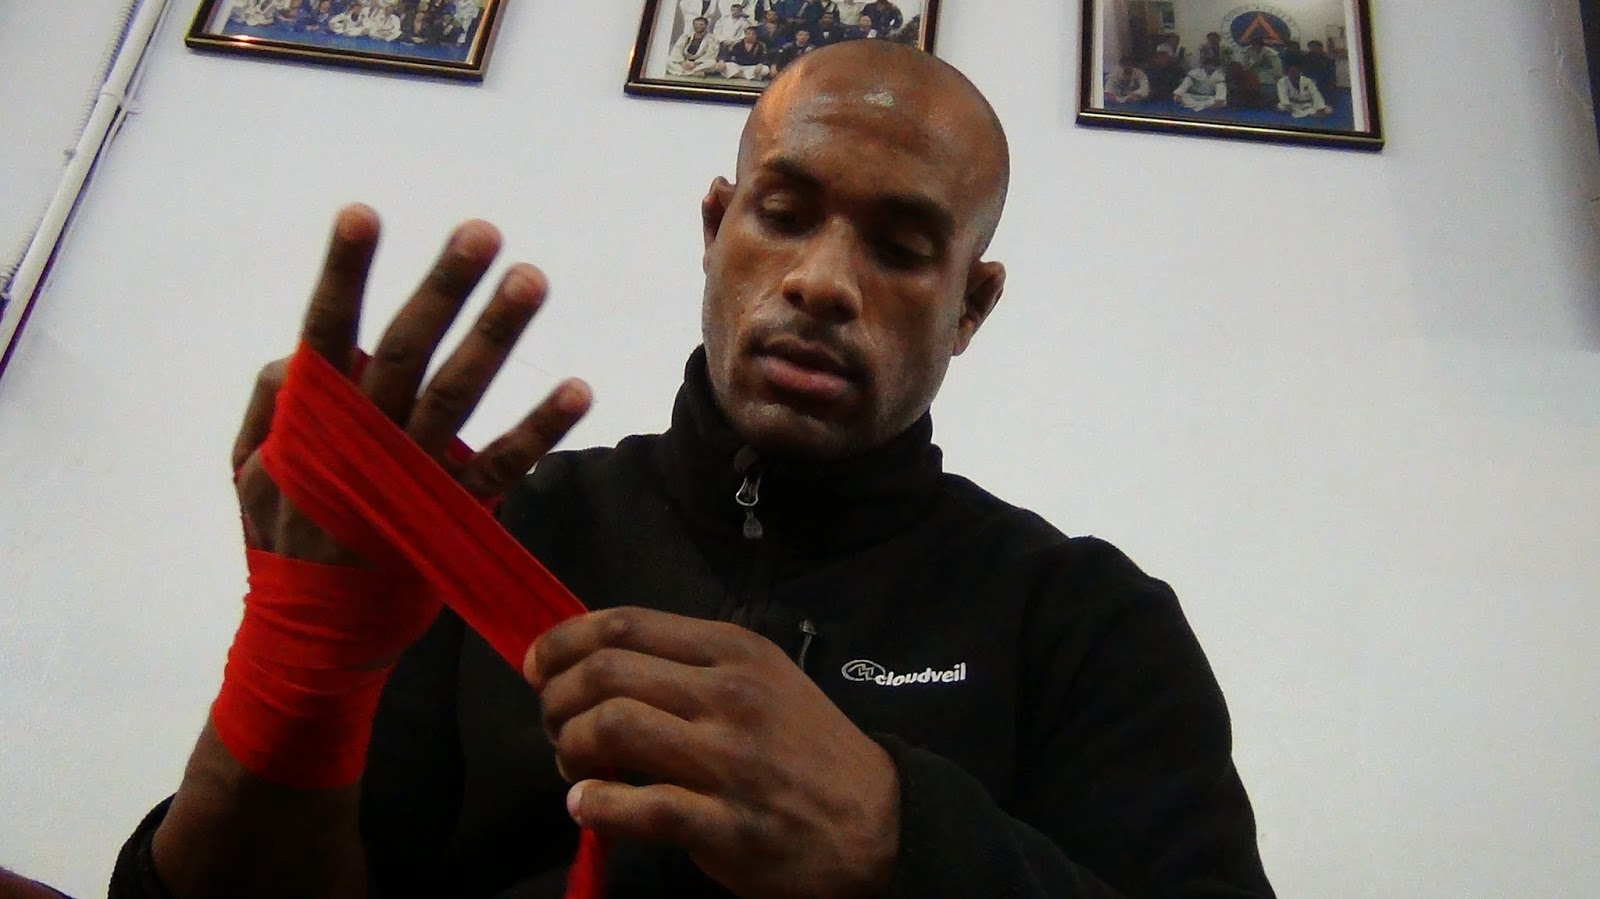 Finding Good Men in Unexpected Places My Journey into Mixed Martial Arts